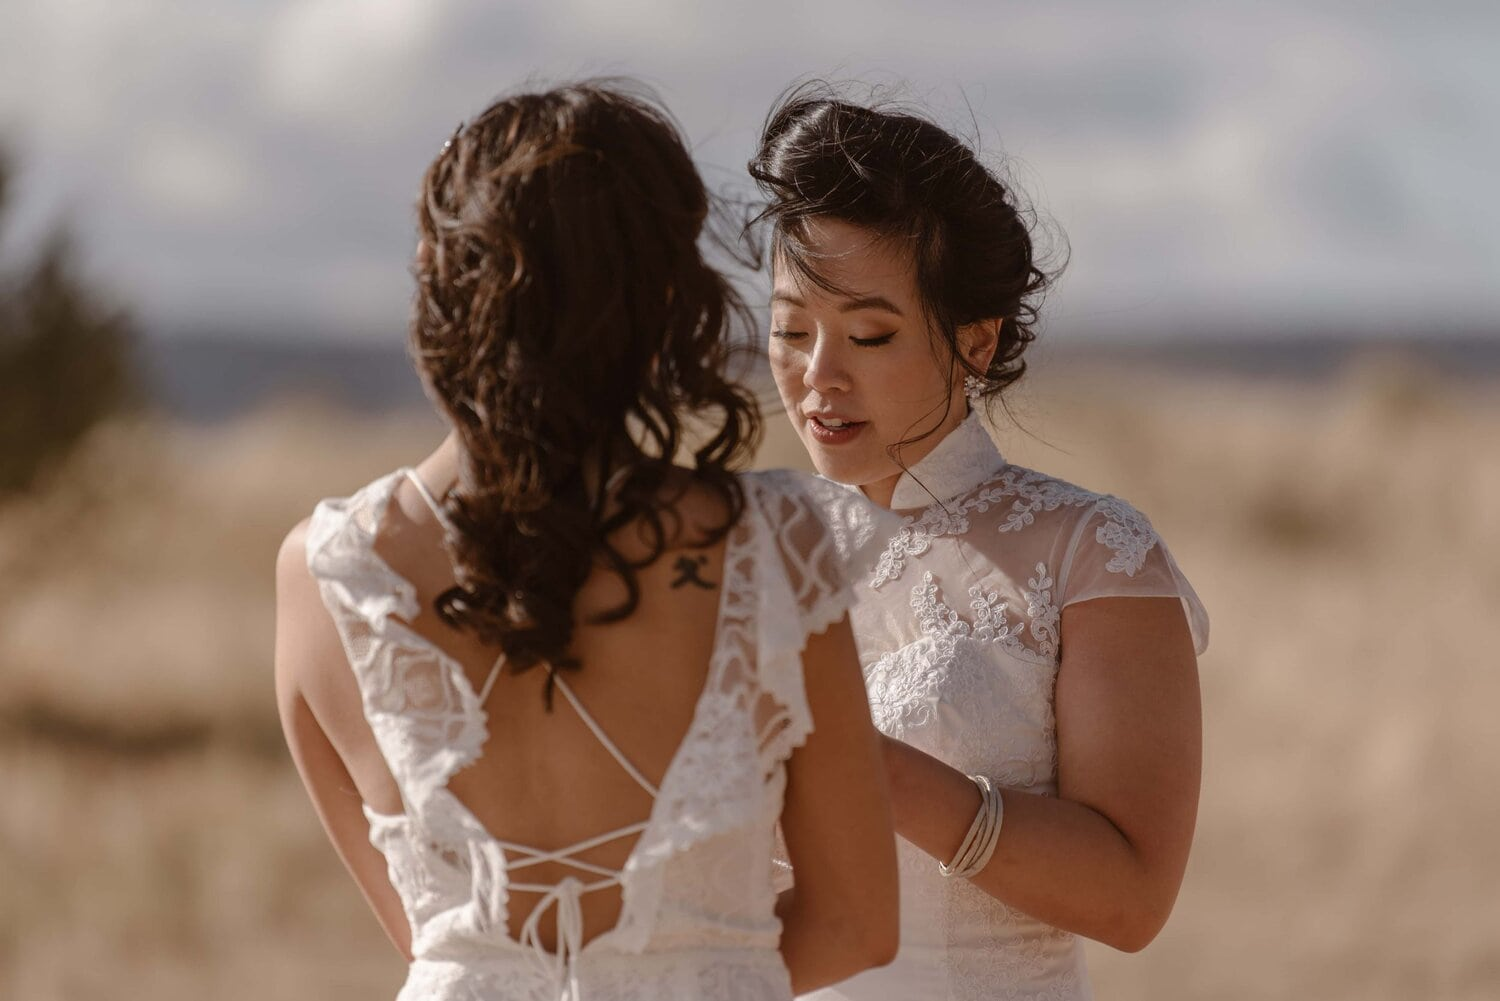 Two brides exchange vows during their wedding ceremony.